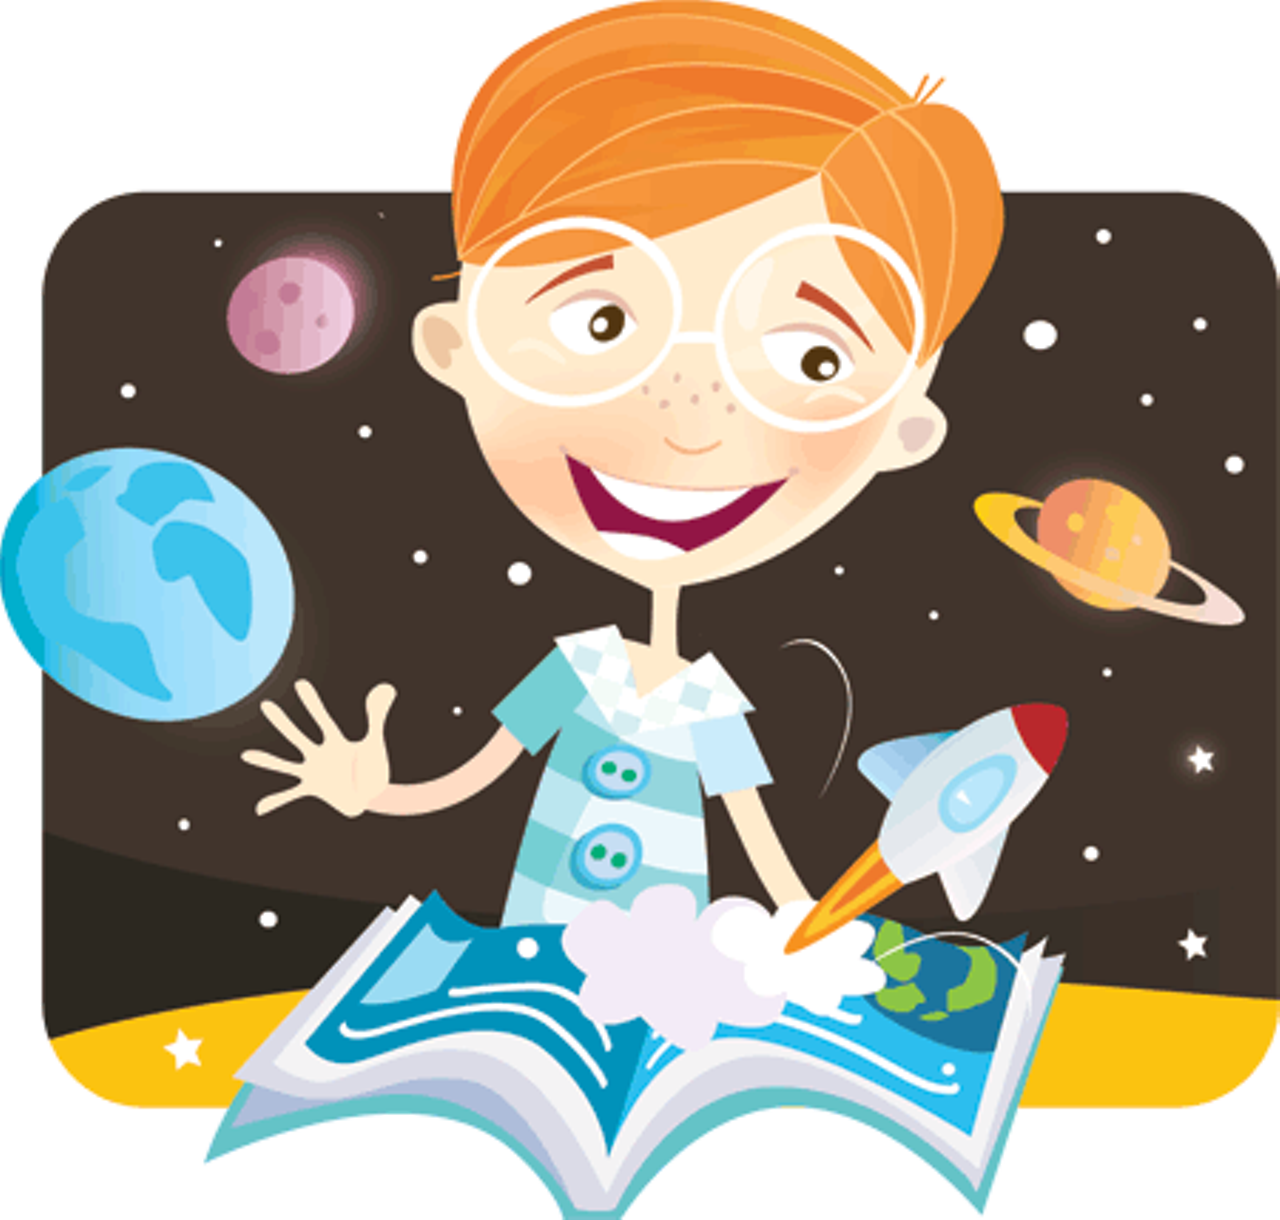 Clipart boy points to book image library library Little Genius | Features | Kids VT - small people, big ideas! image library library